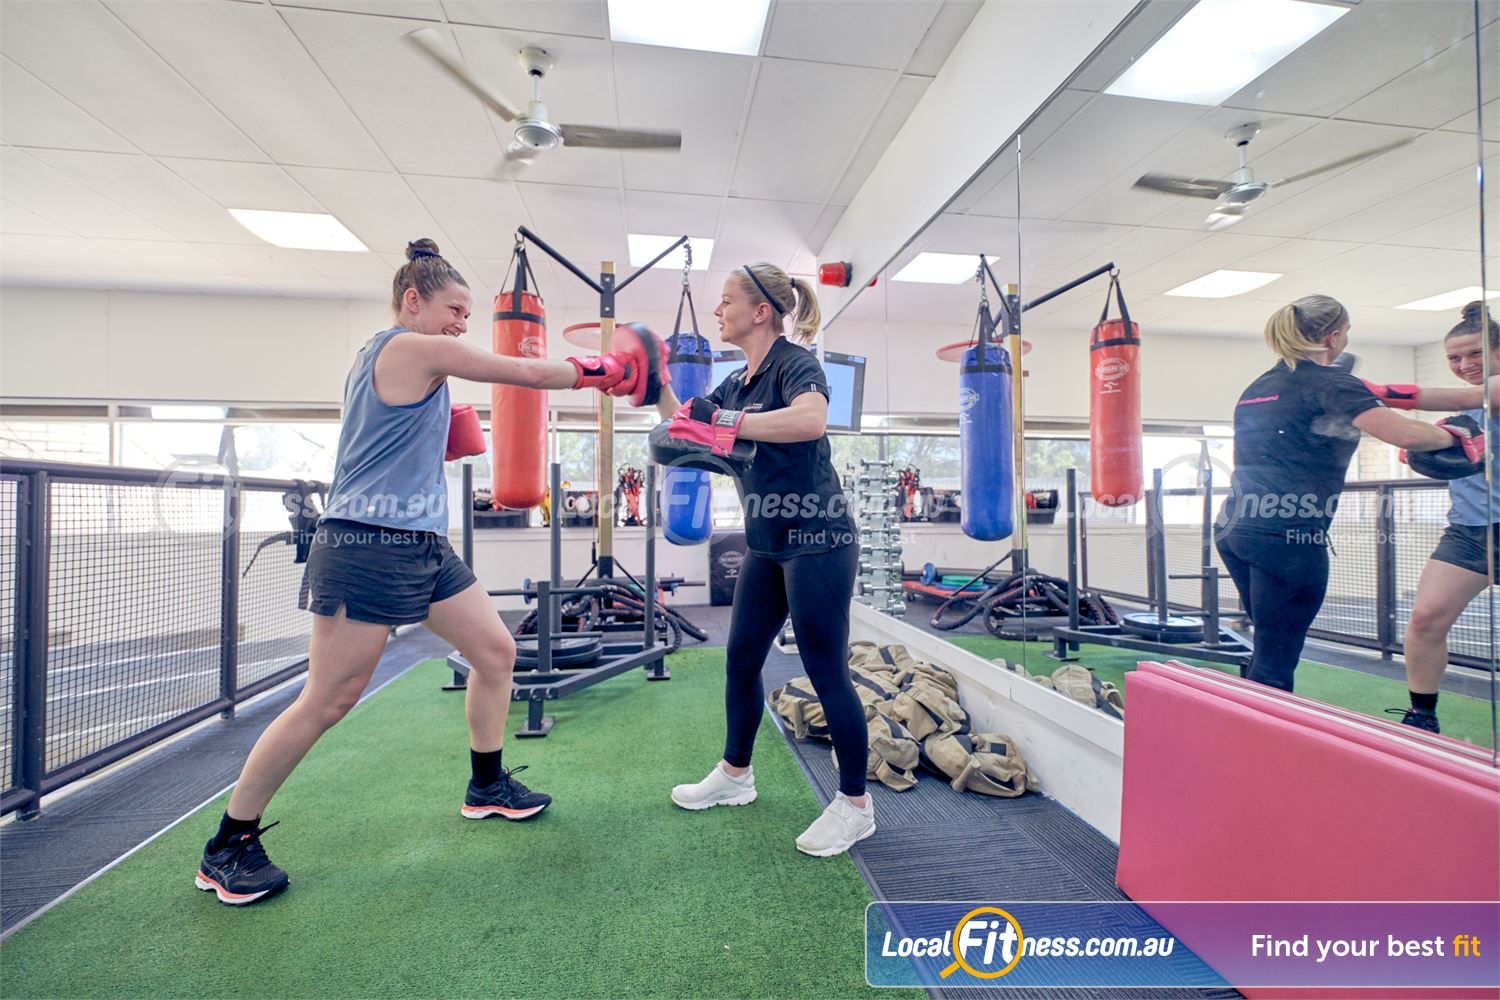 Fernwood Fitness Tullamarine The Tullamarine boxing space includes heavy bags, speedball, pad work and more.